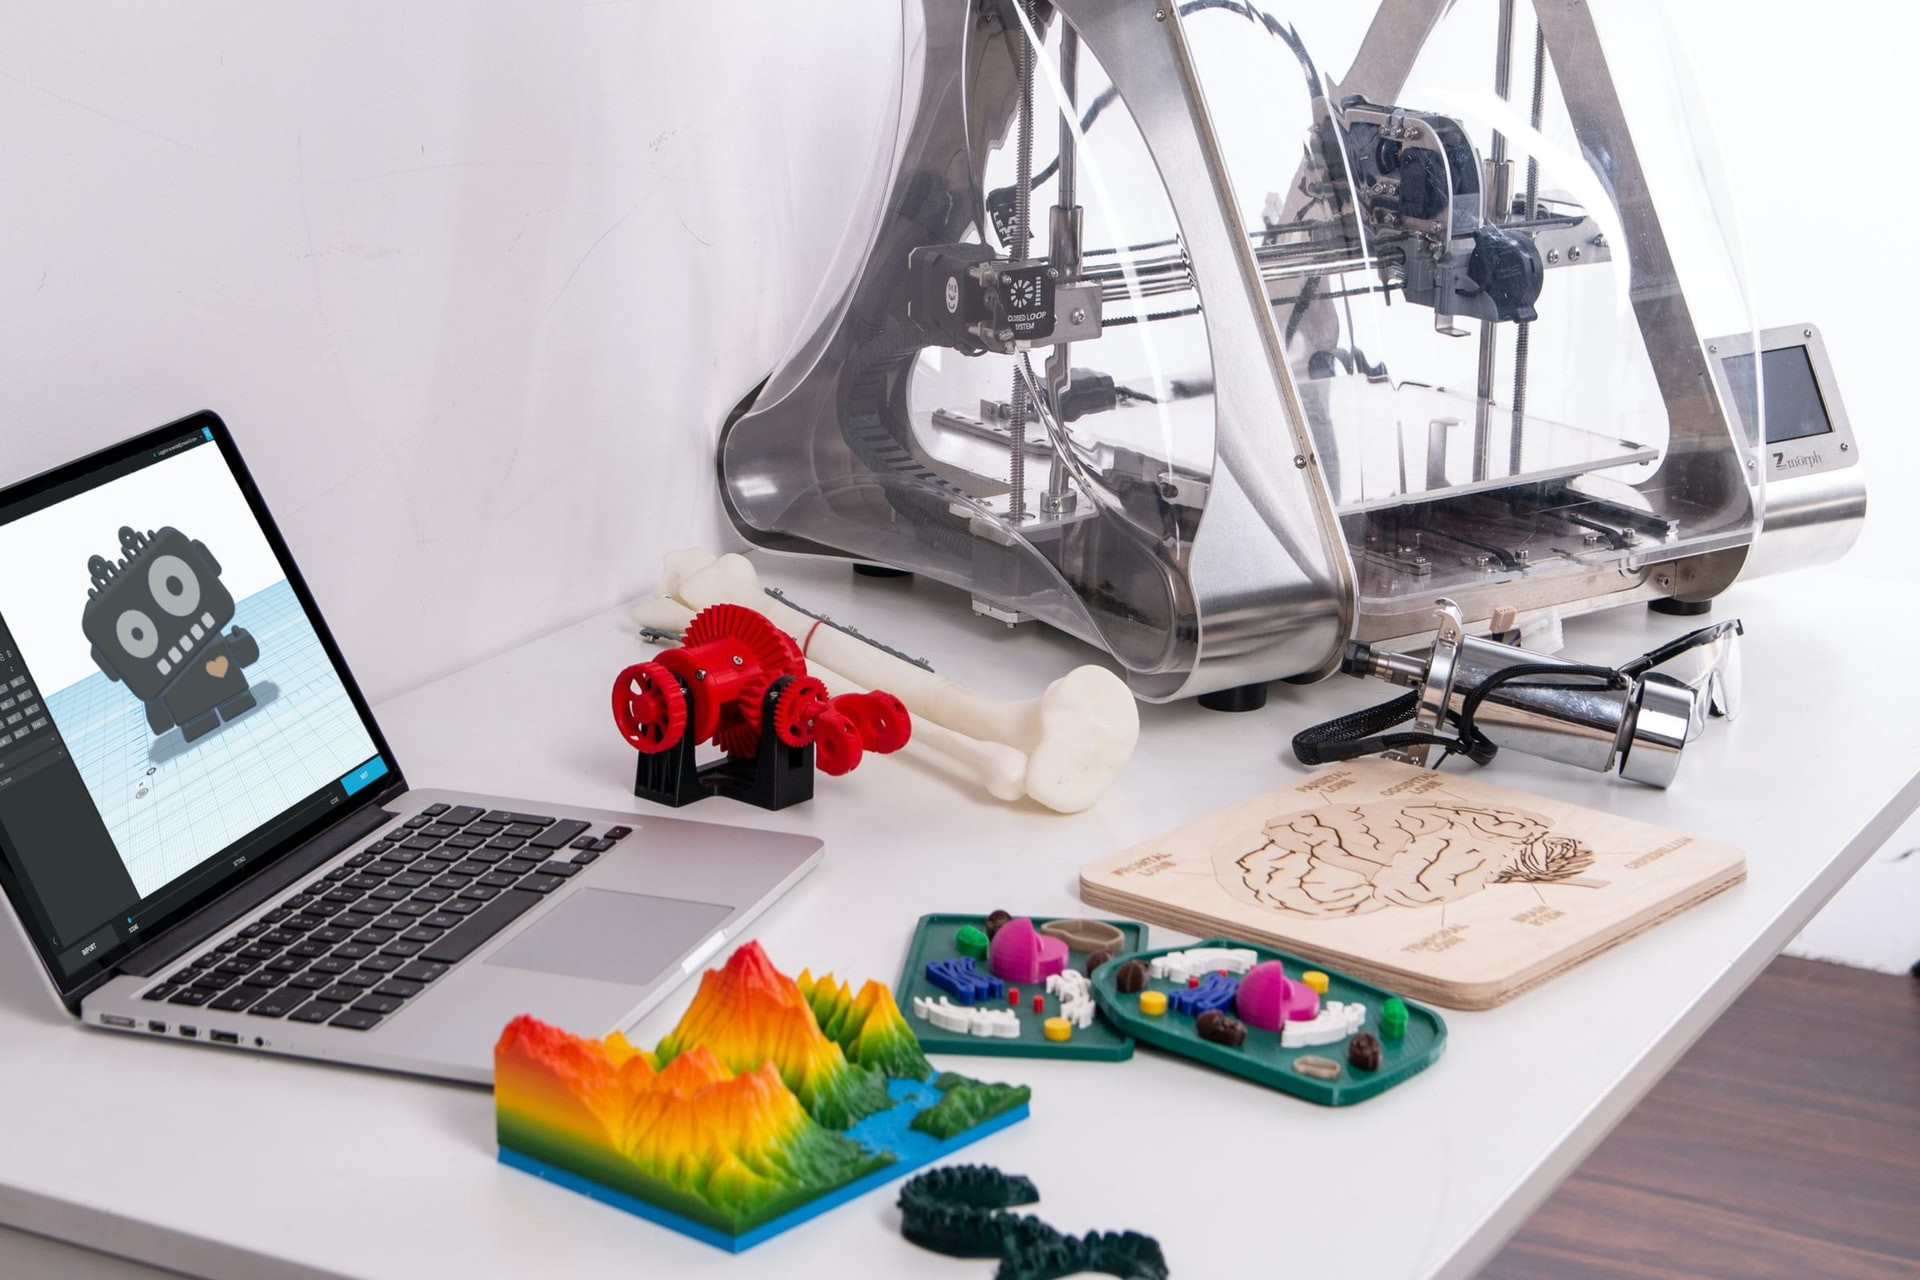 A 3D printing machine next to a laptop and 3D printed objects.